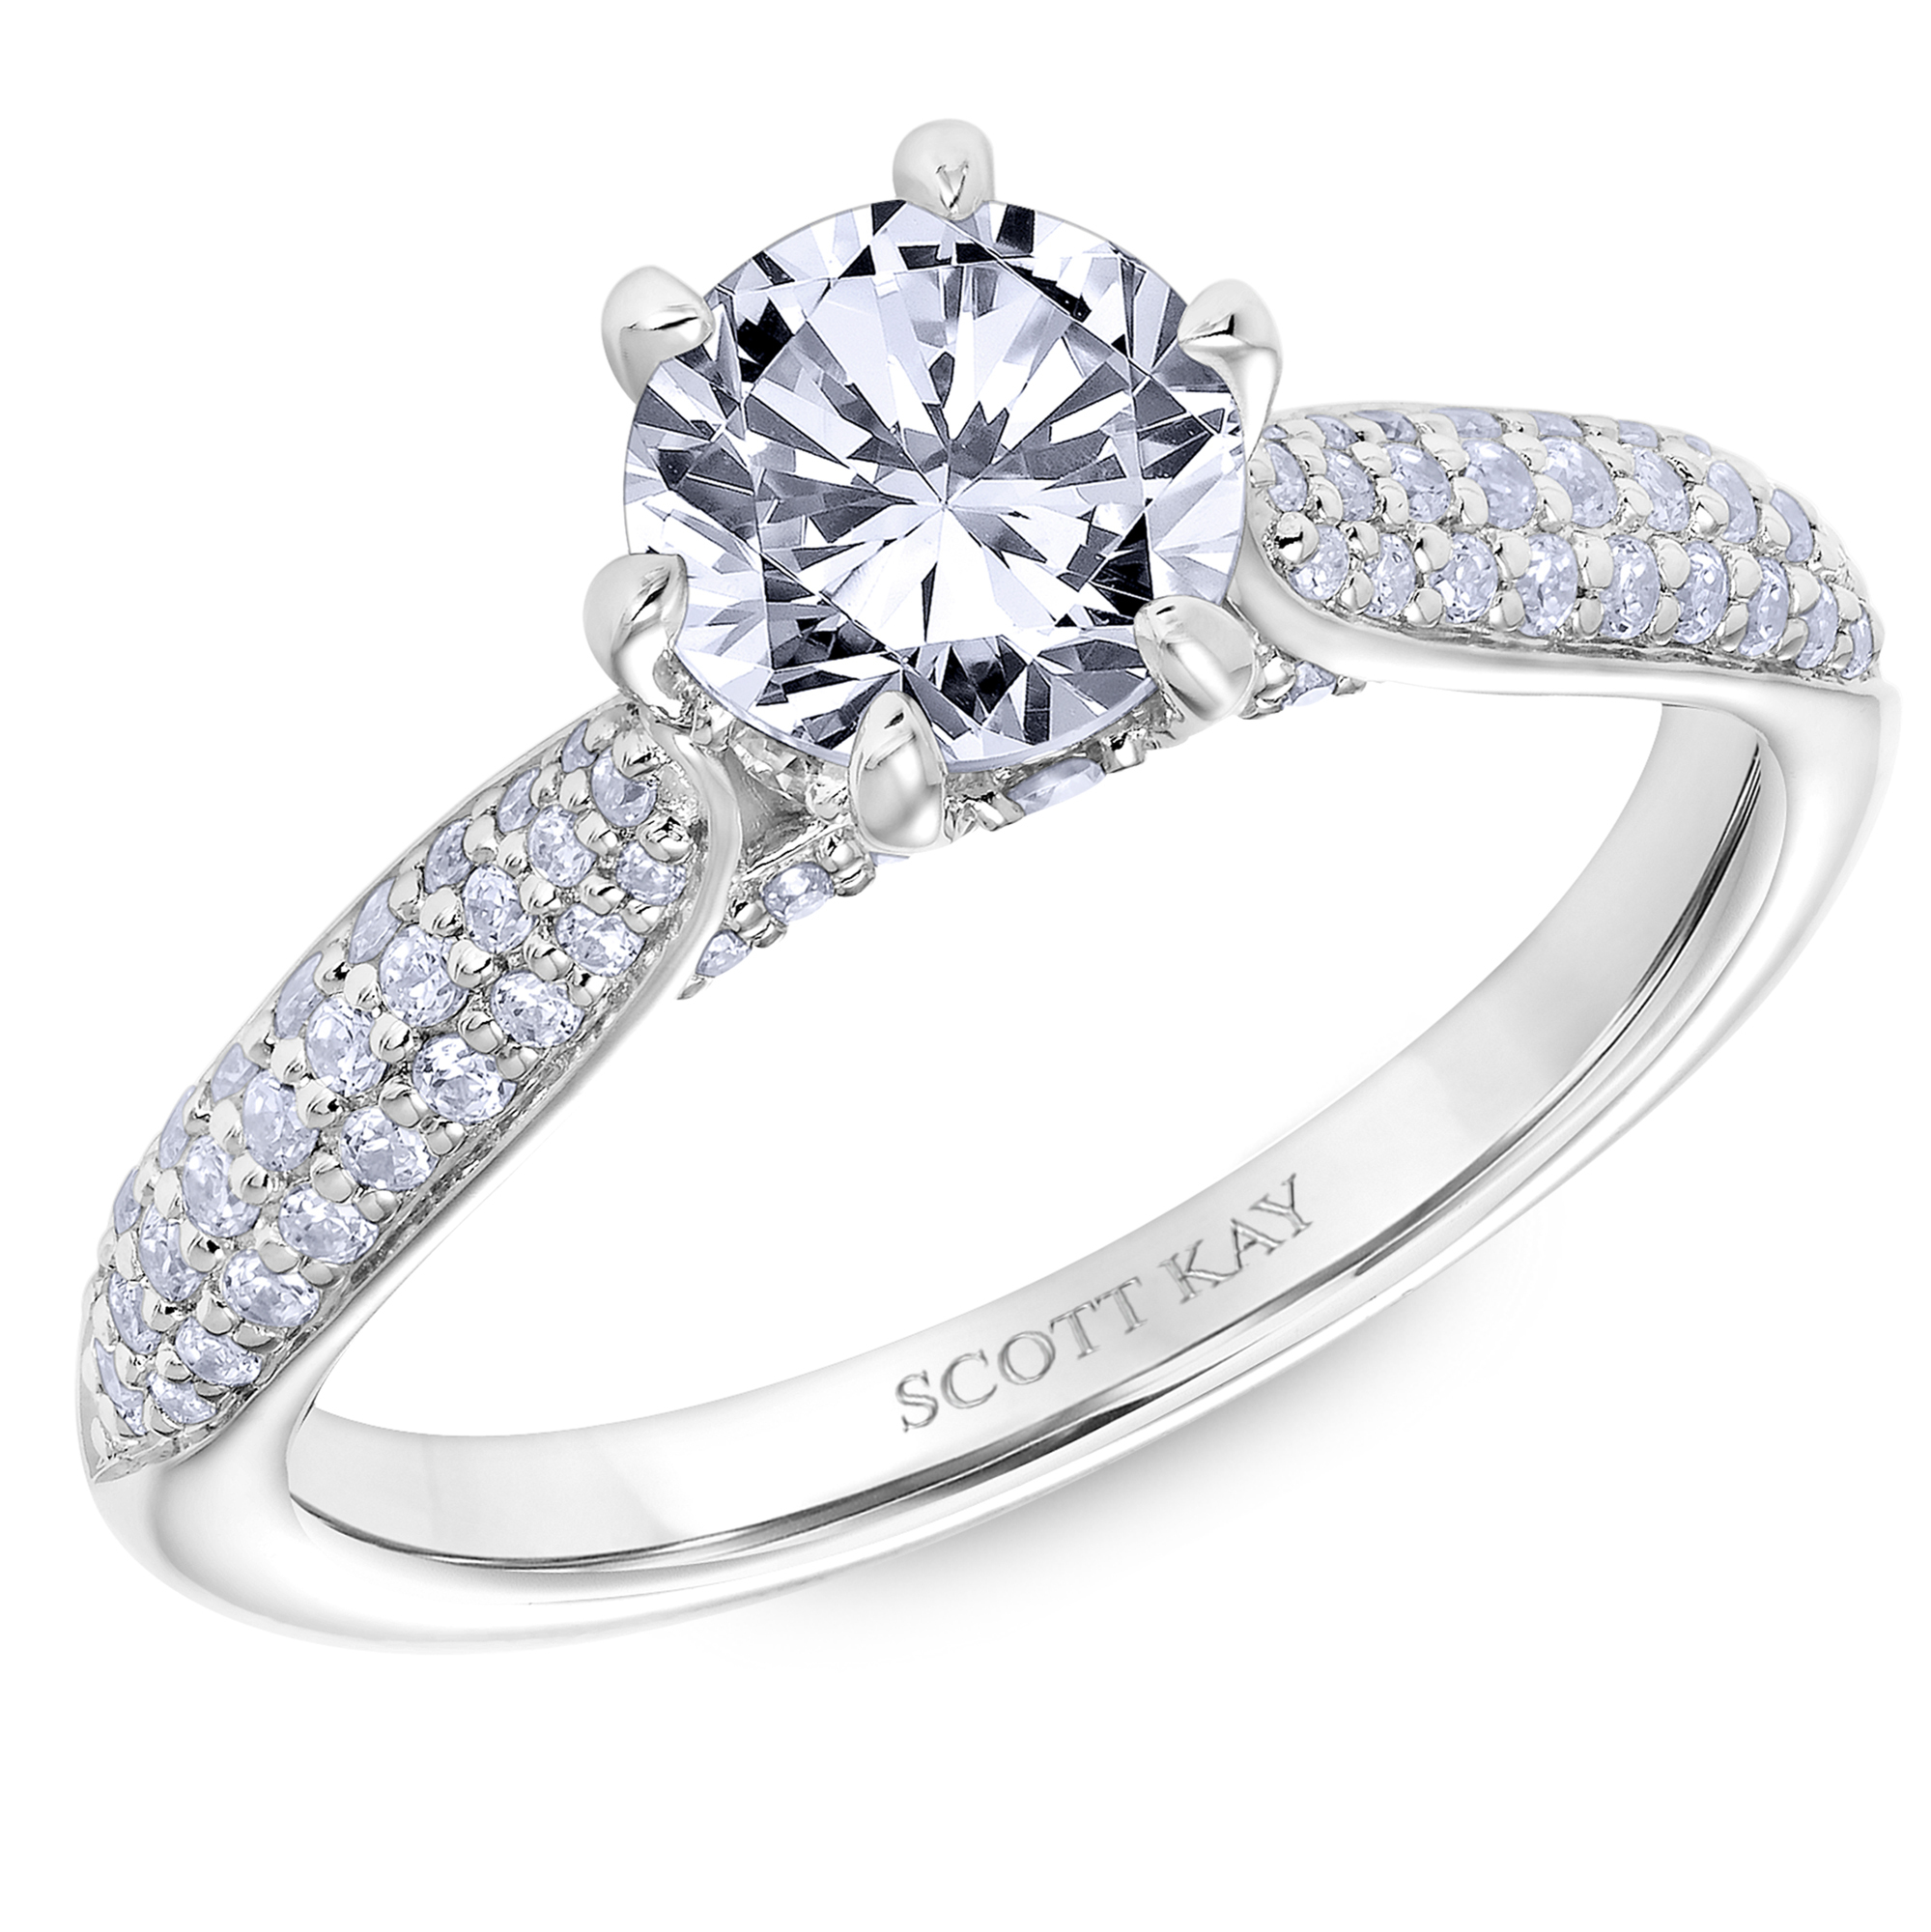 rings jewelry j for veg fd engagement master sale kay ring platinum id diamond scott at carat